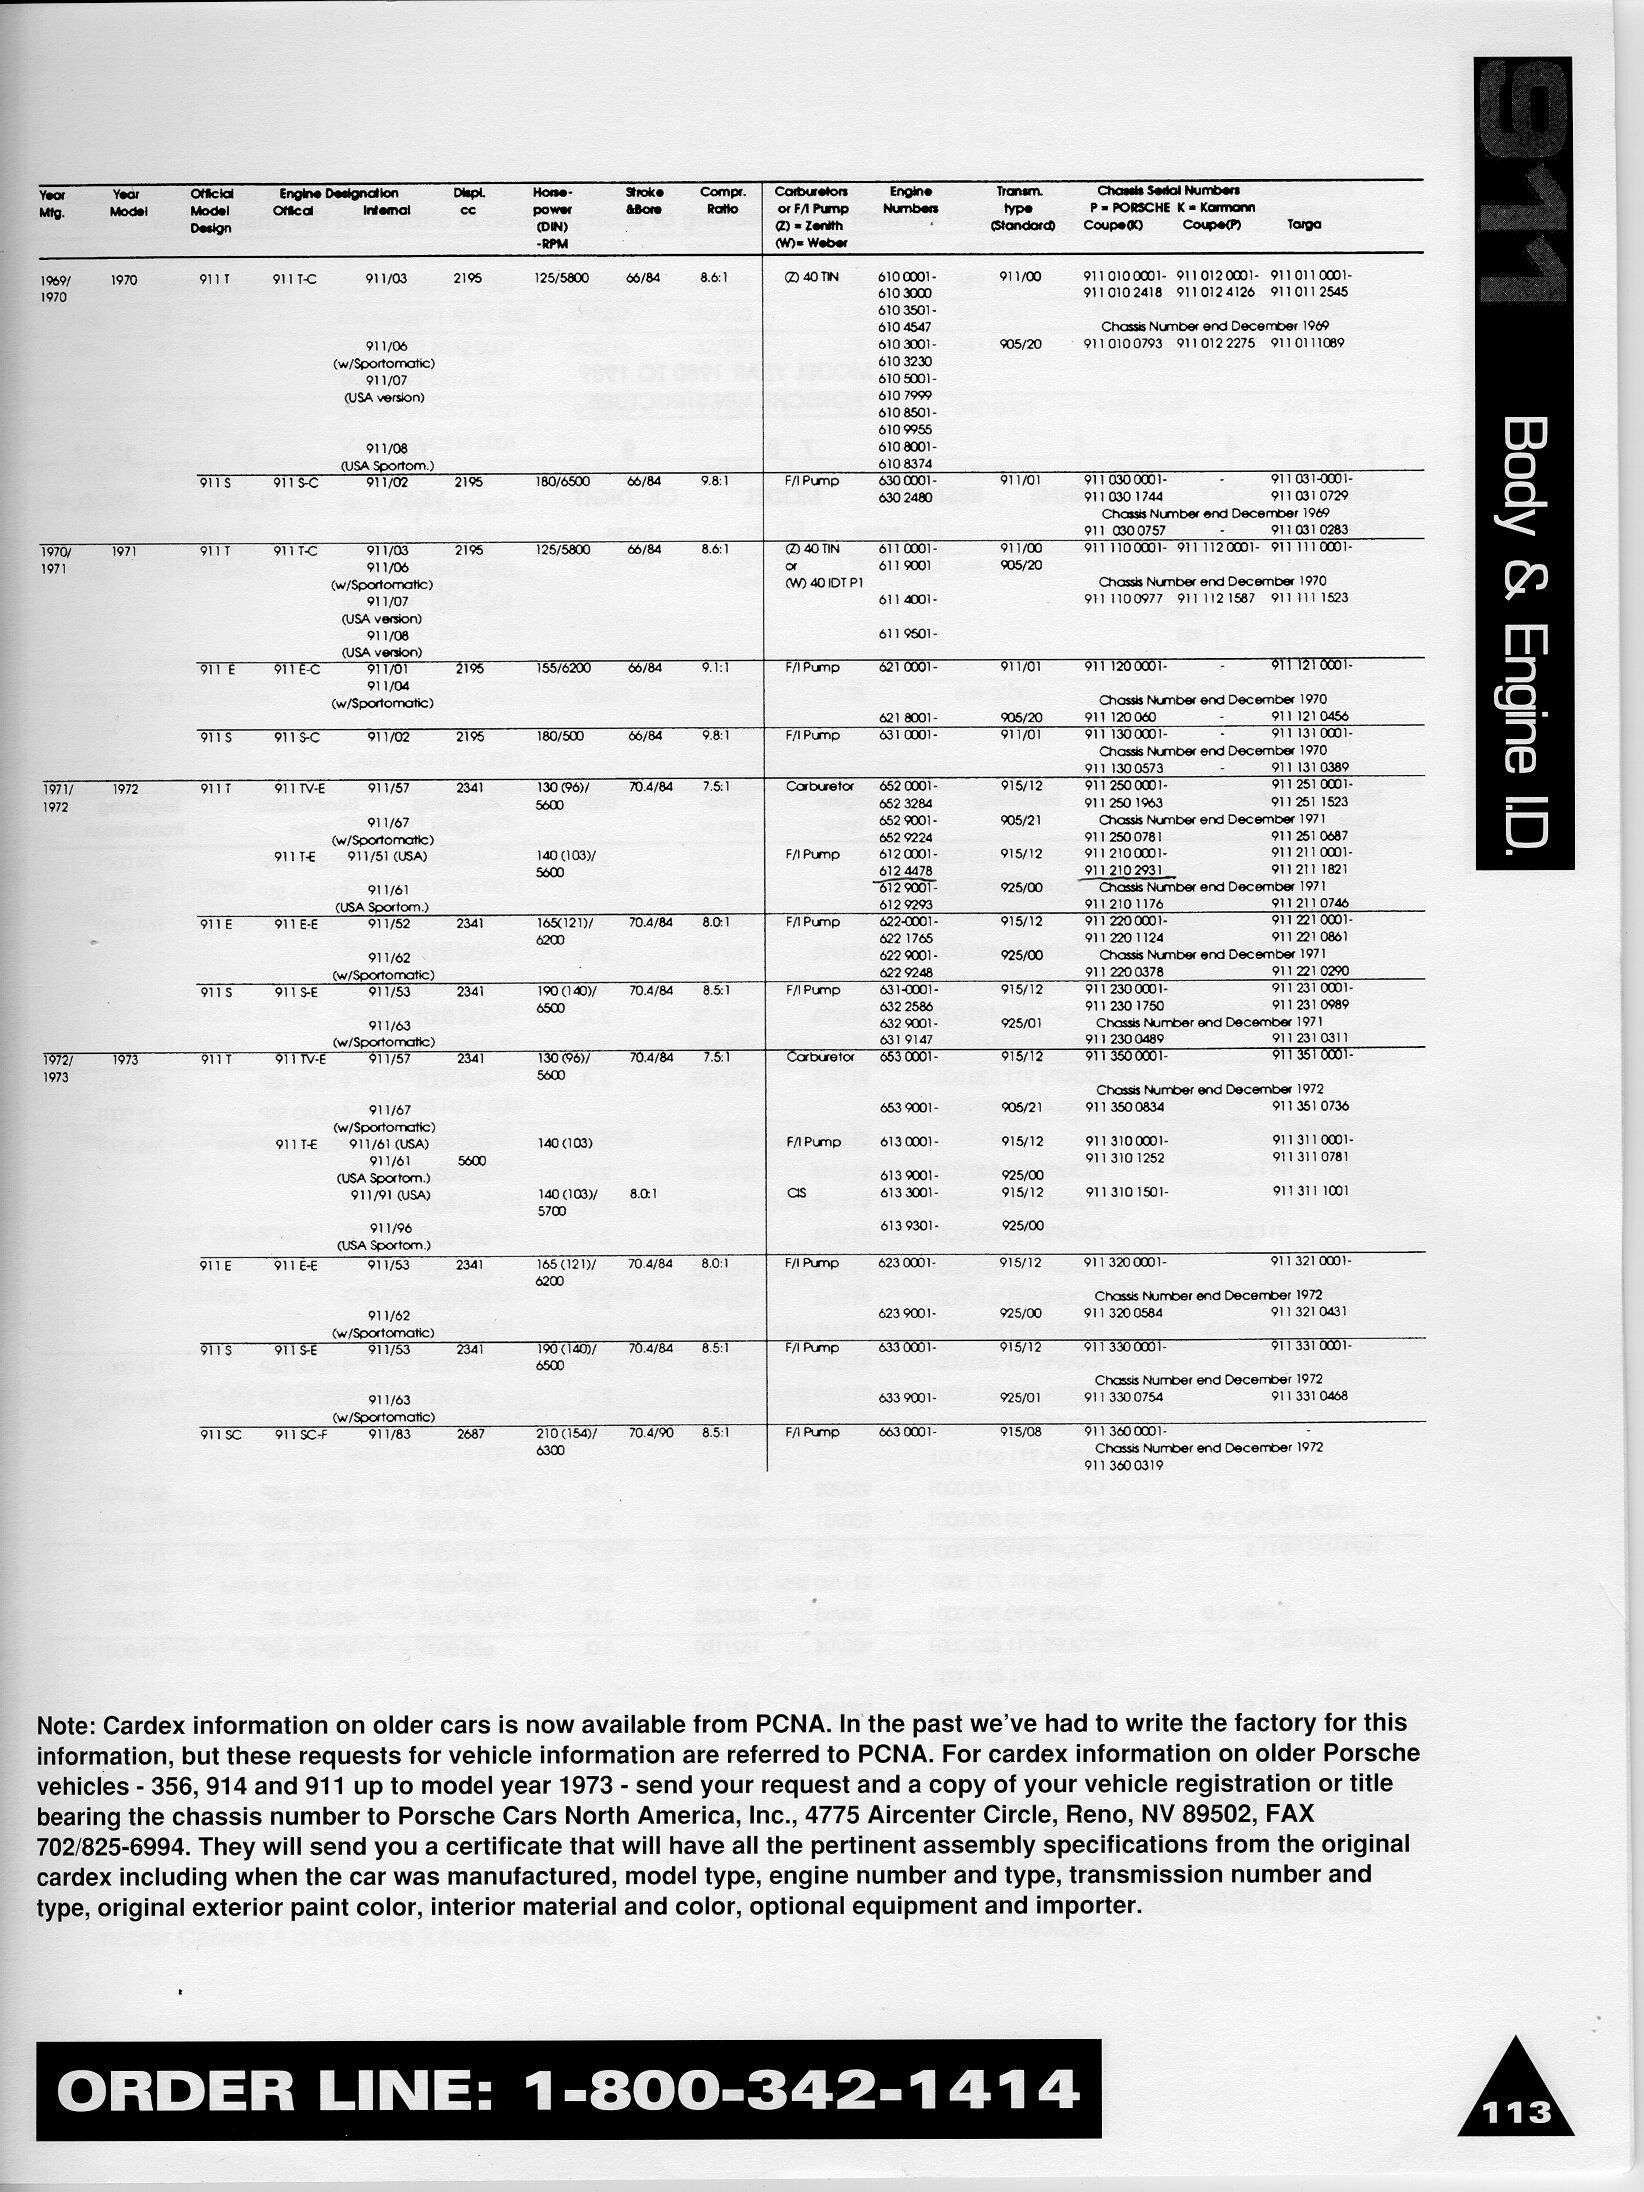 Porsche 911 912 930 1965 1989 Body Engine Identification 996 Cylinder Diagram